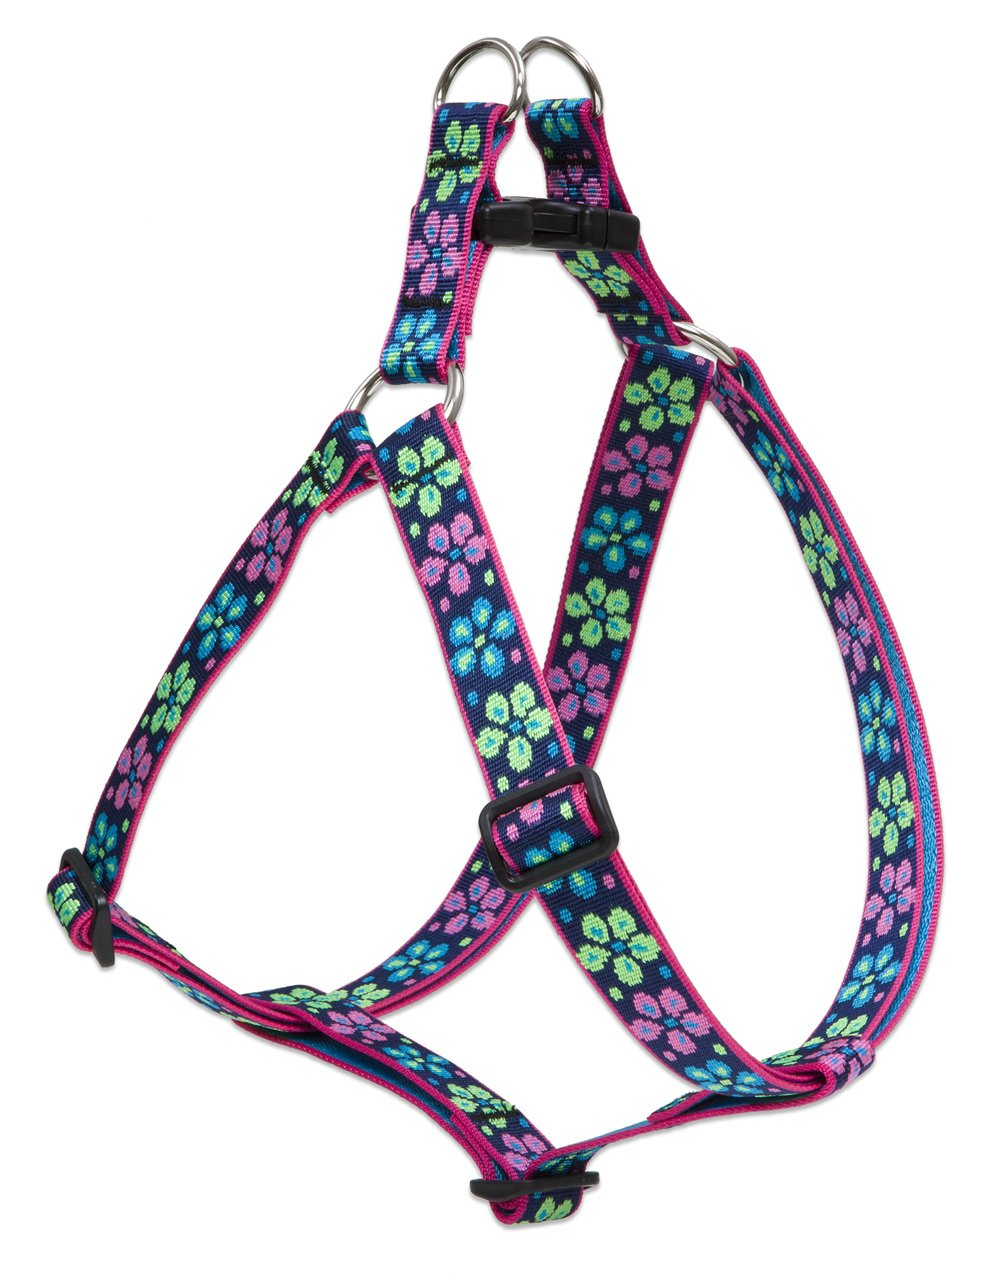 1\ Lupine 1-Inch Flower Power Step-In Harness for Large Dogs, 24 to 38-Inch